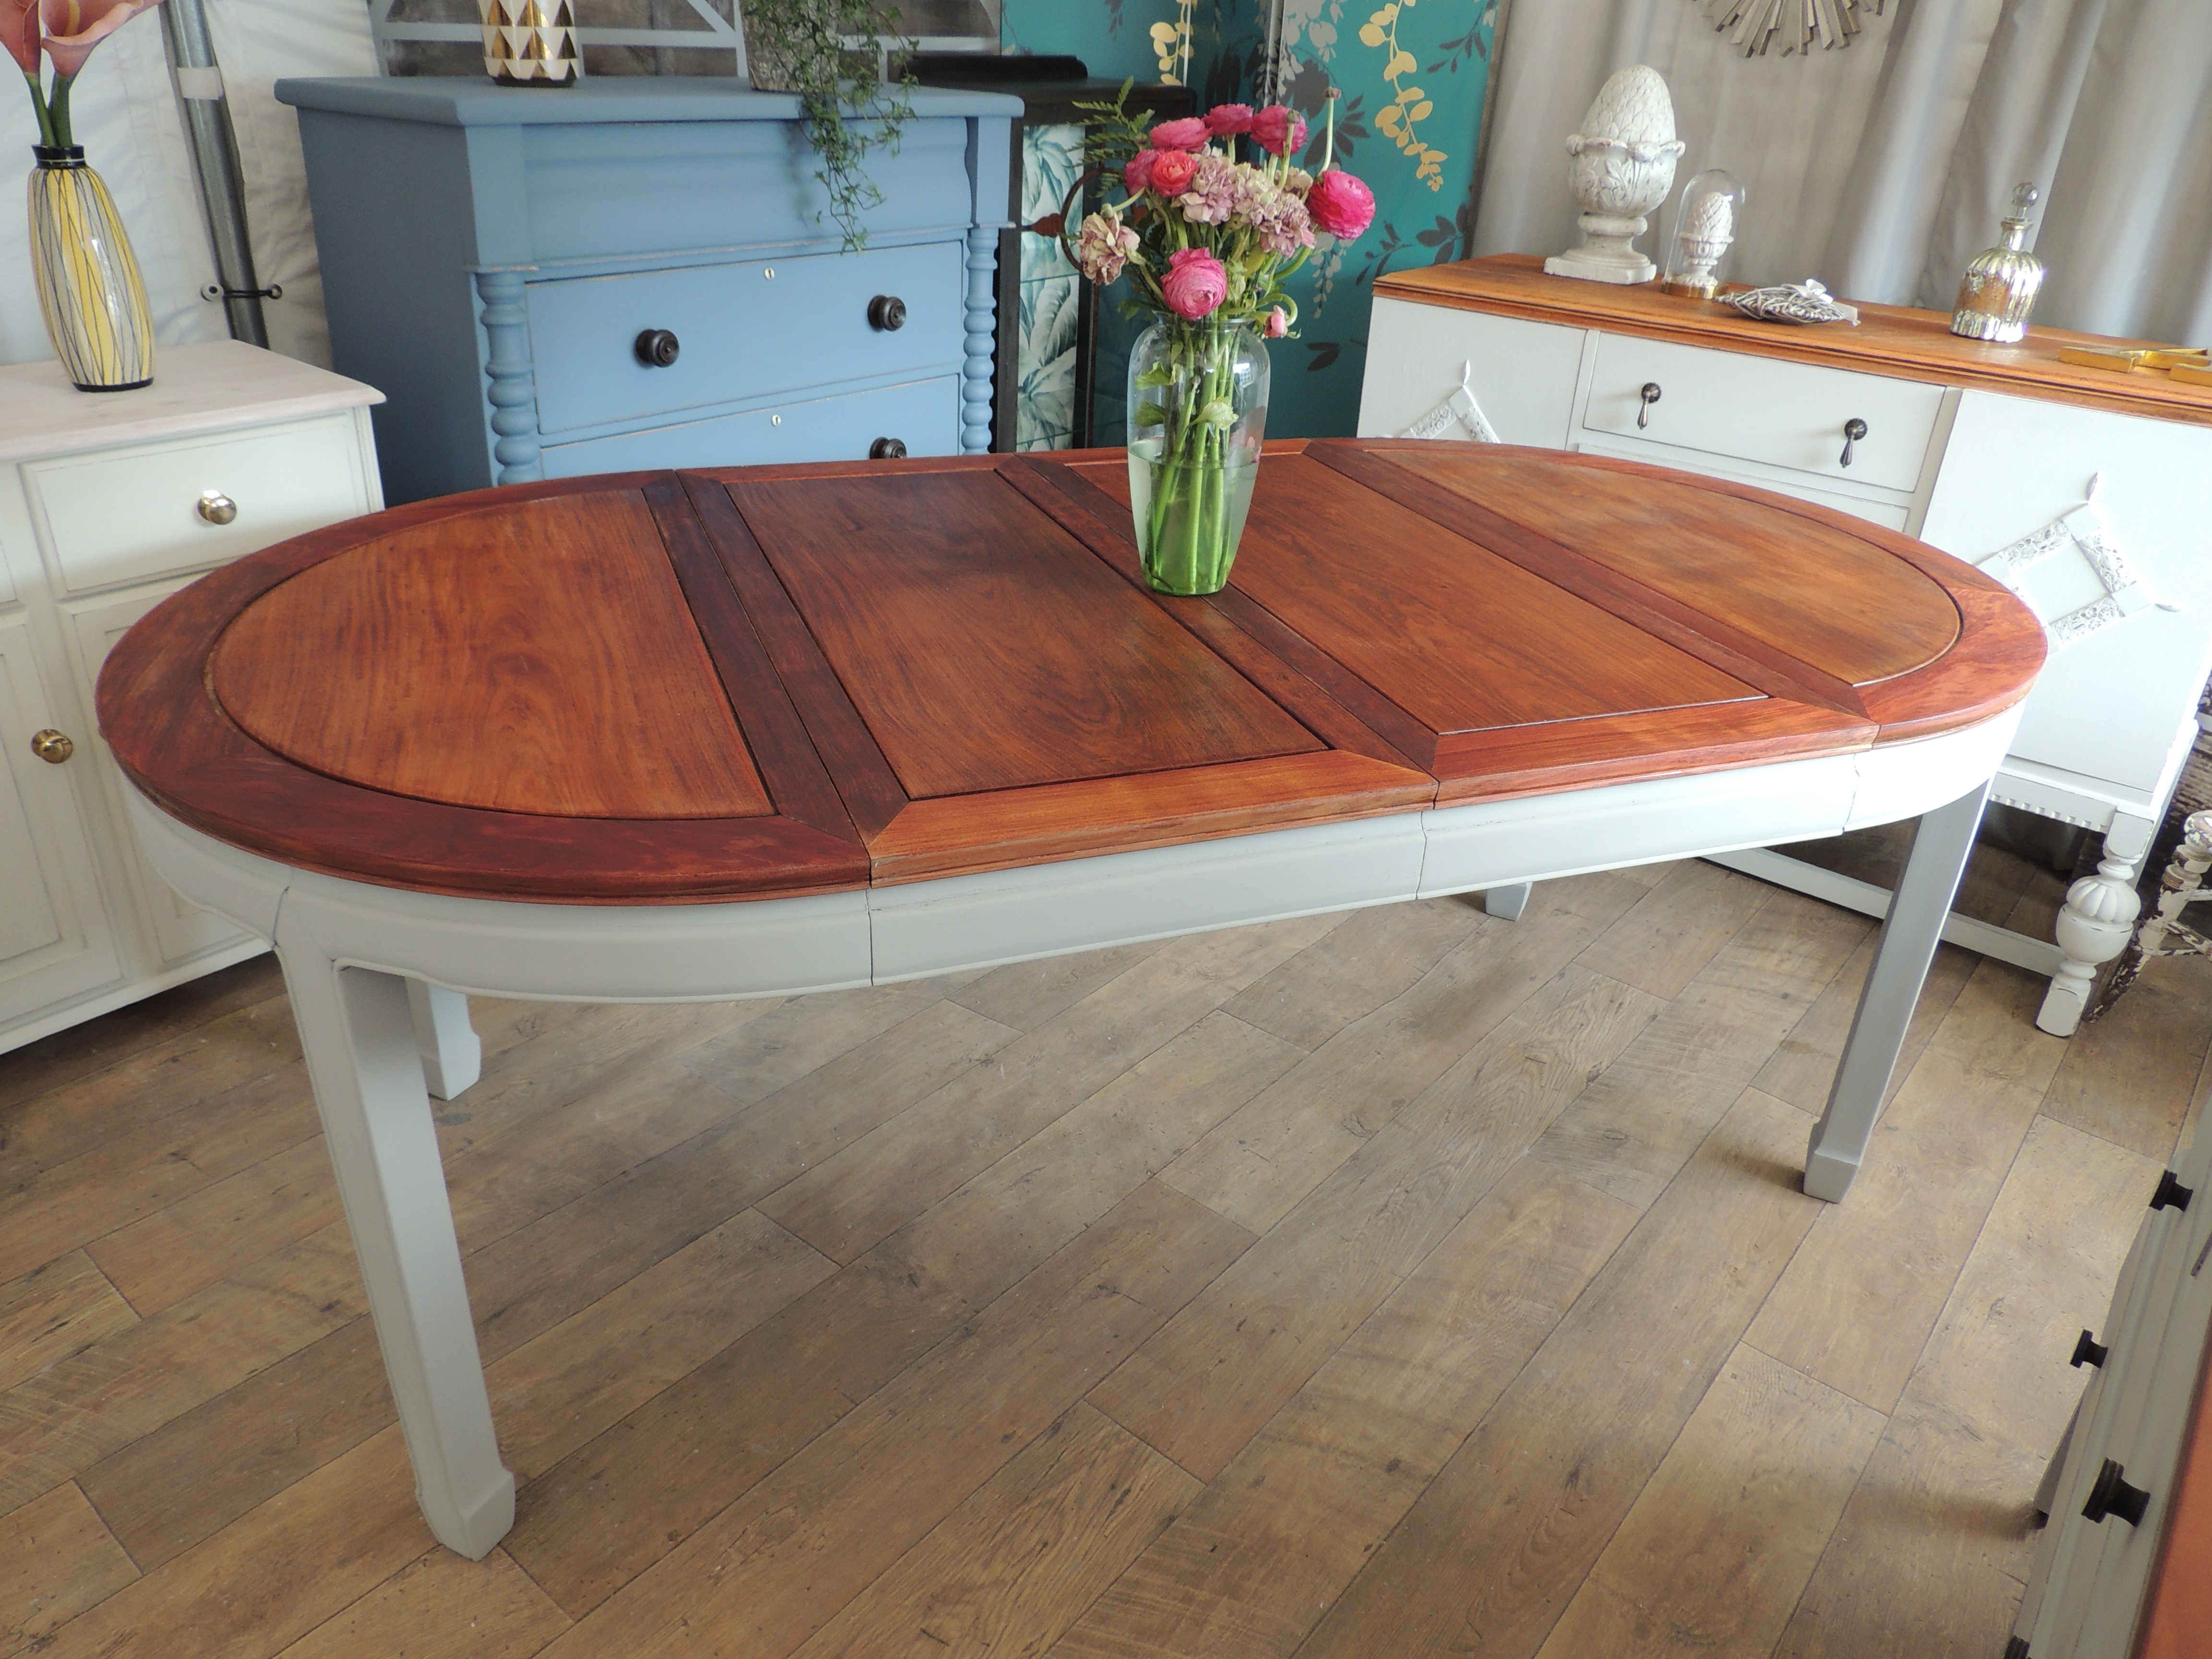 Most Current Shabby Chic Extendable Dining Tables Intended For Shabby Chic Extending Dining Table For 4 8 People – Eclectivo London (View 9 of 25)